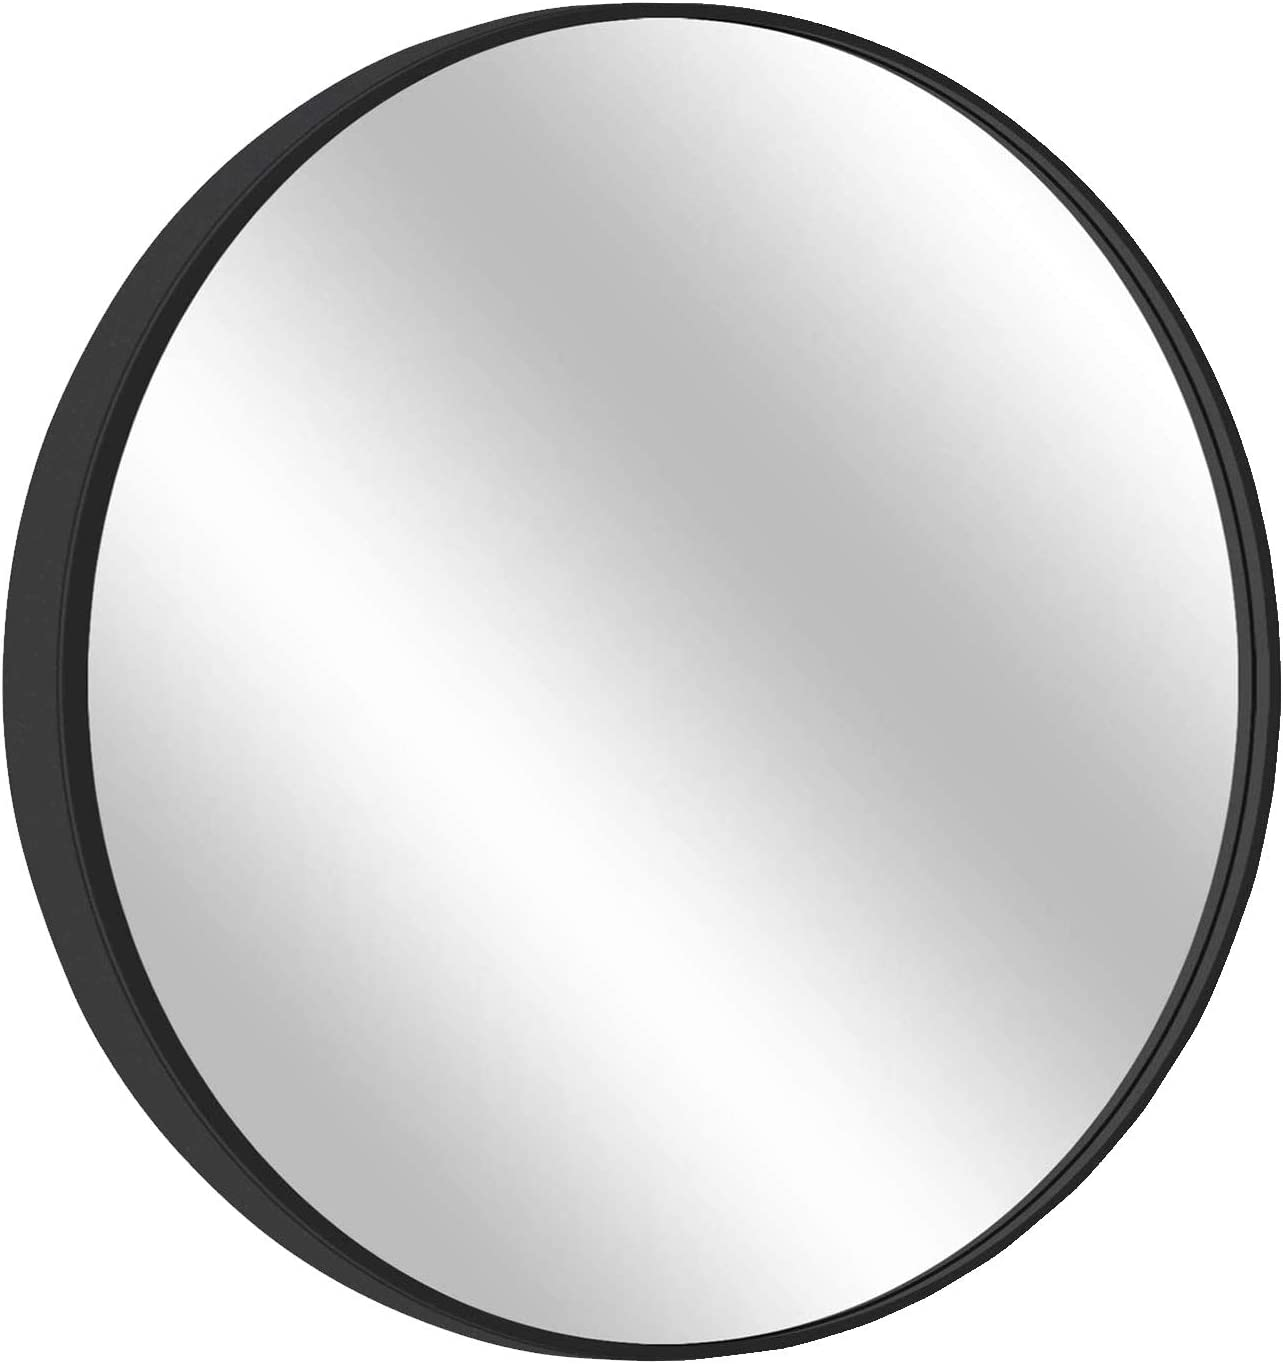 Round Framed Wall Hanging Mirror: Vanity Mirror Large Circle Metal Mirror for Decorative Wall Art (Black, 32inch)